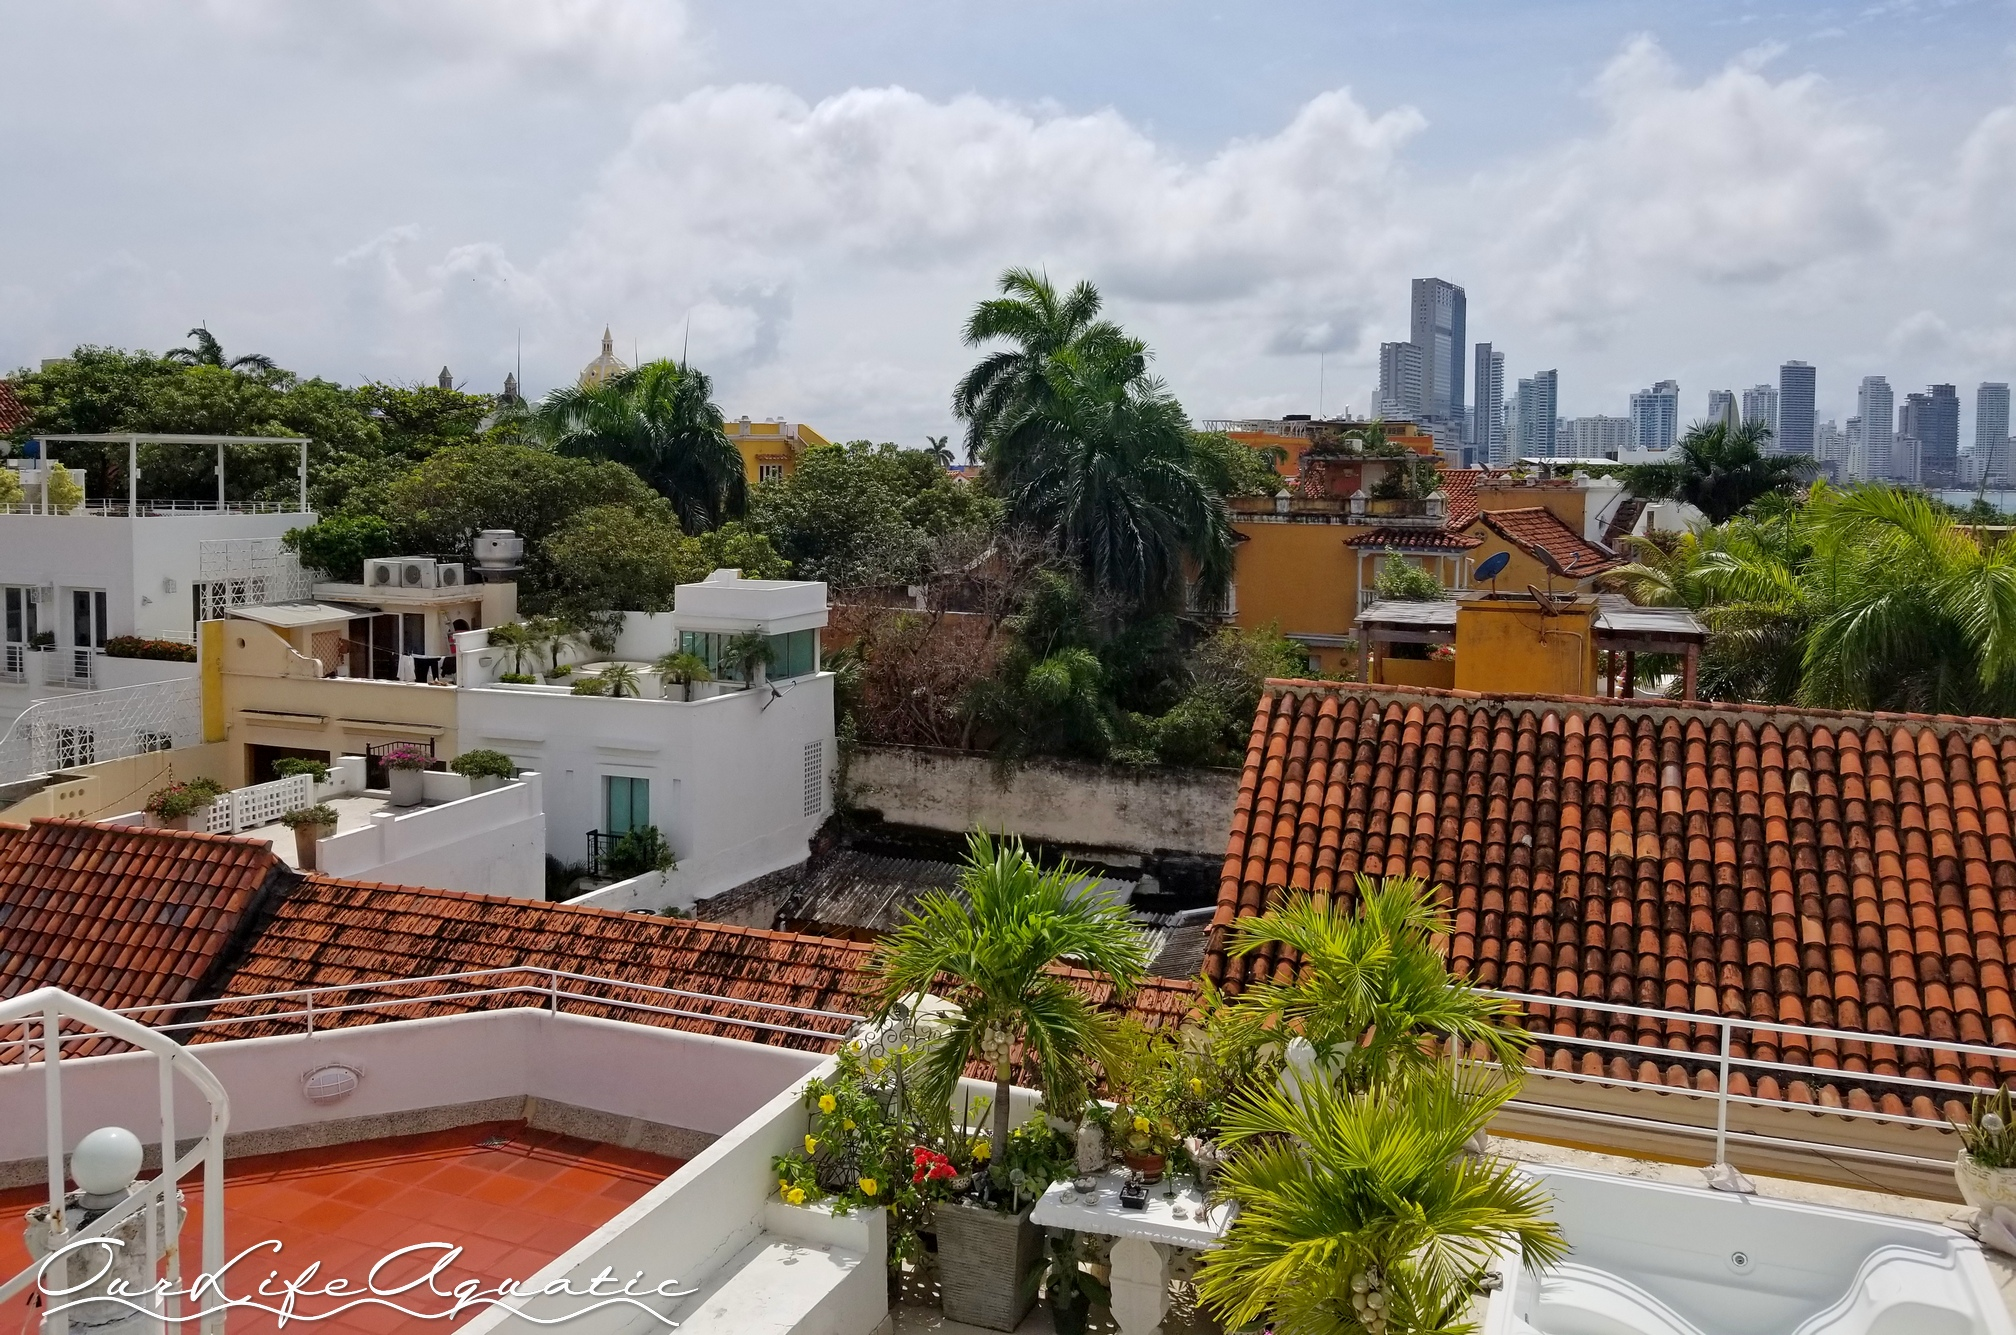 Rooftop view from our apartment building